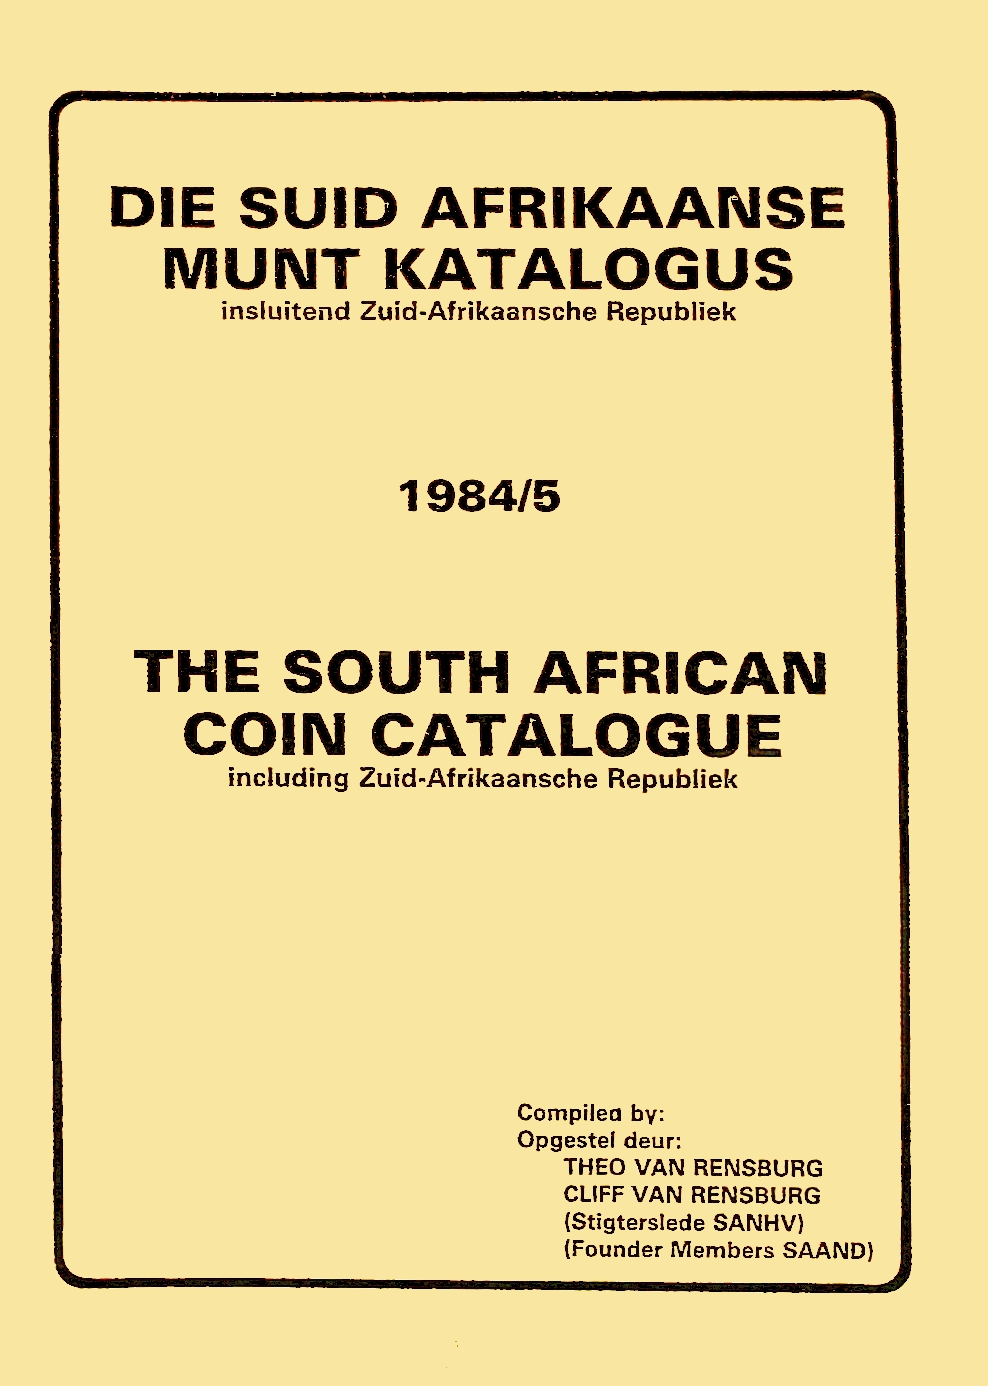 Randburg Coin Catalogue 1984 to 1985